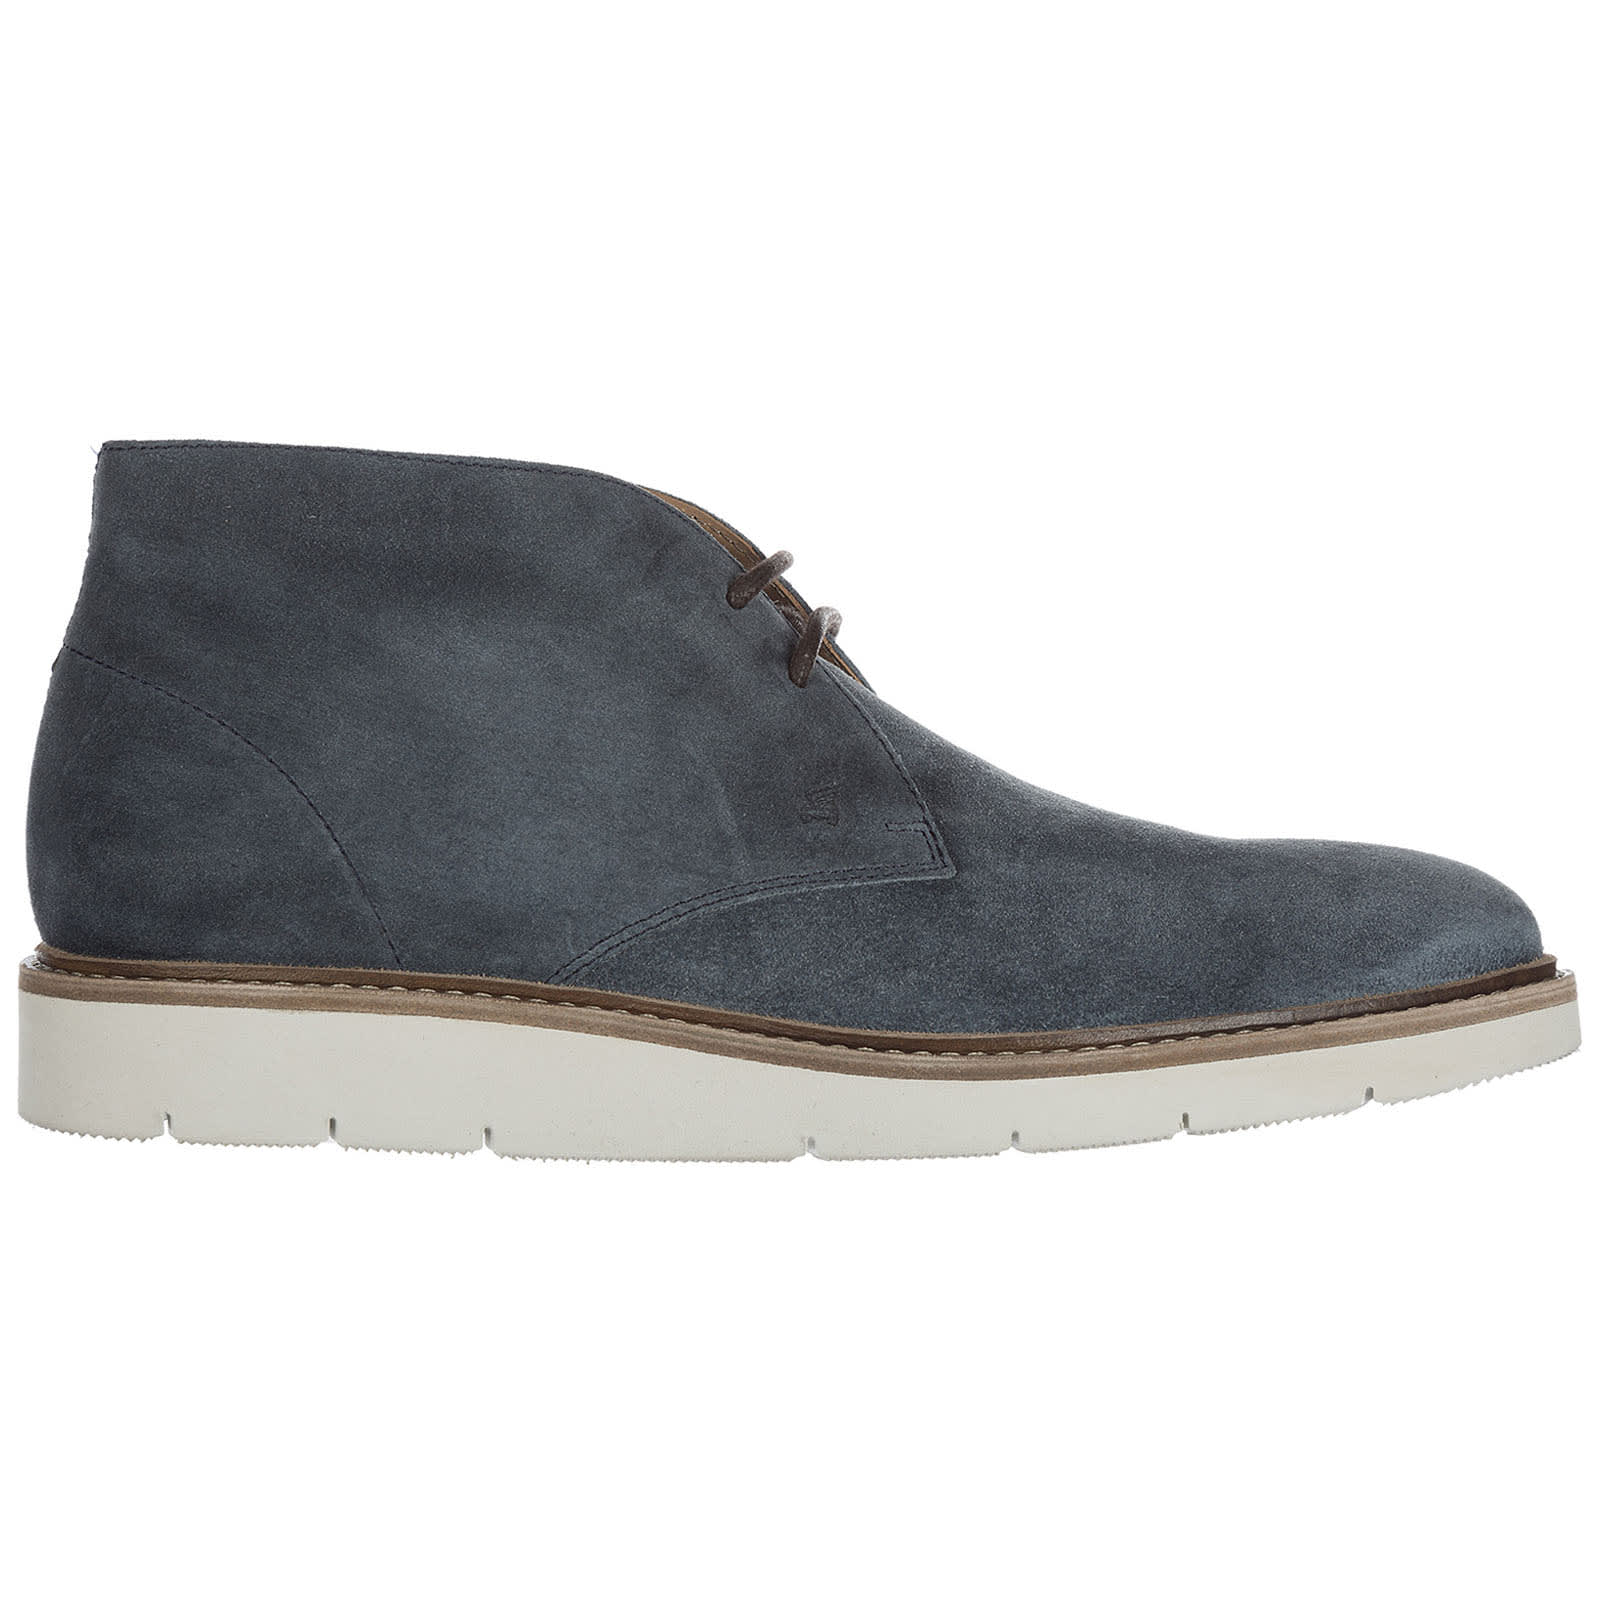 Hogan Dress X - H322 Desert Boots